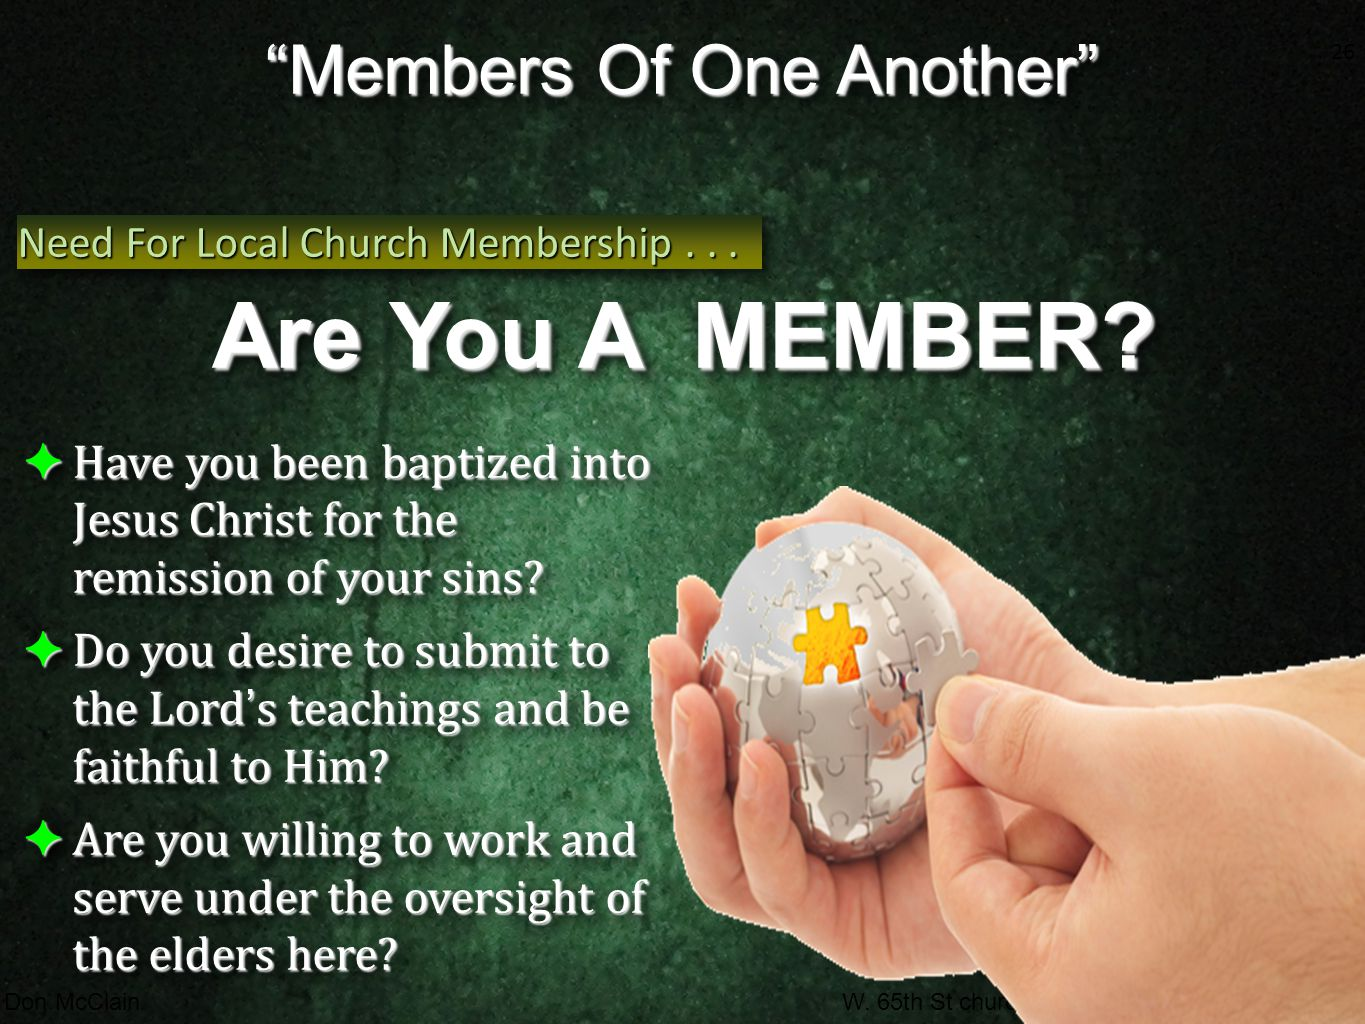 """26 Don McClainW. 65th St church of Christ / September 30, 2007 26 """"Members Of One Another"""" Need For Local Church Membership... Are You A MEMBER? ✦ Hav"""